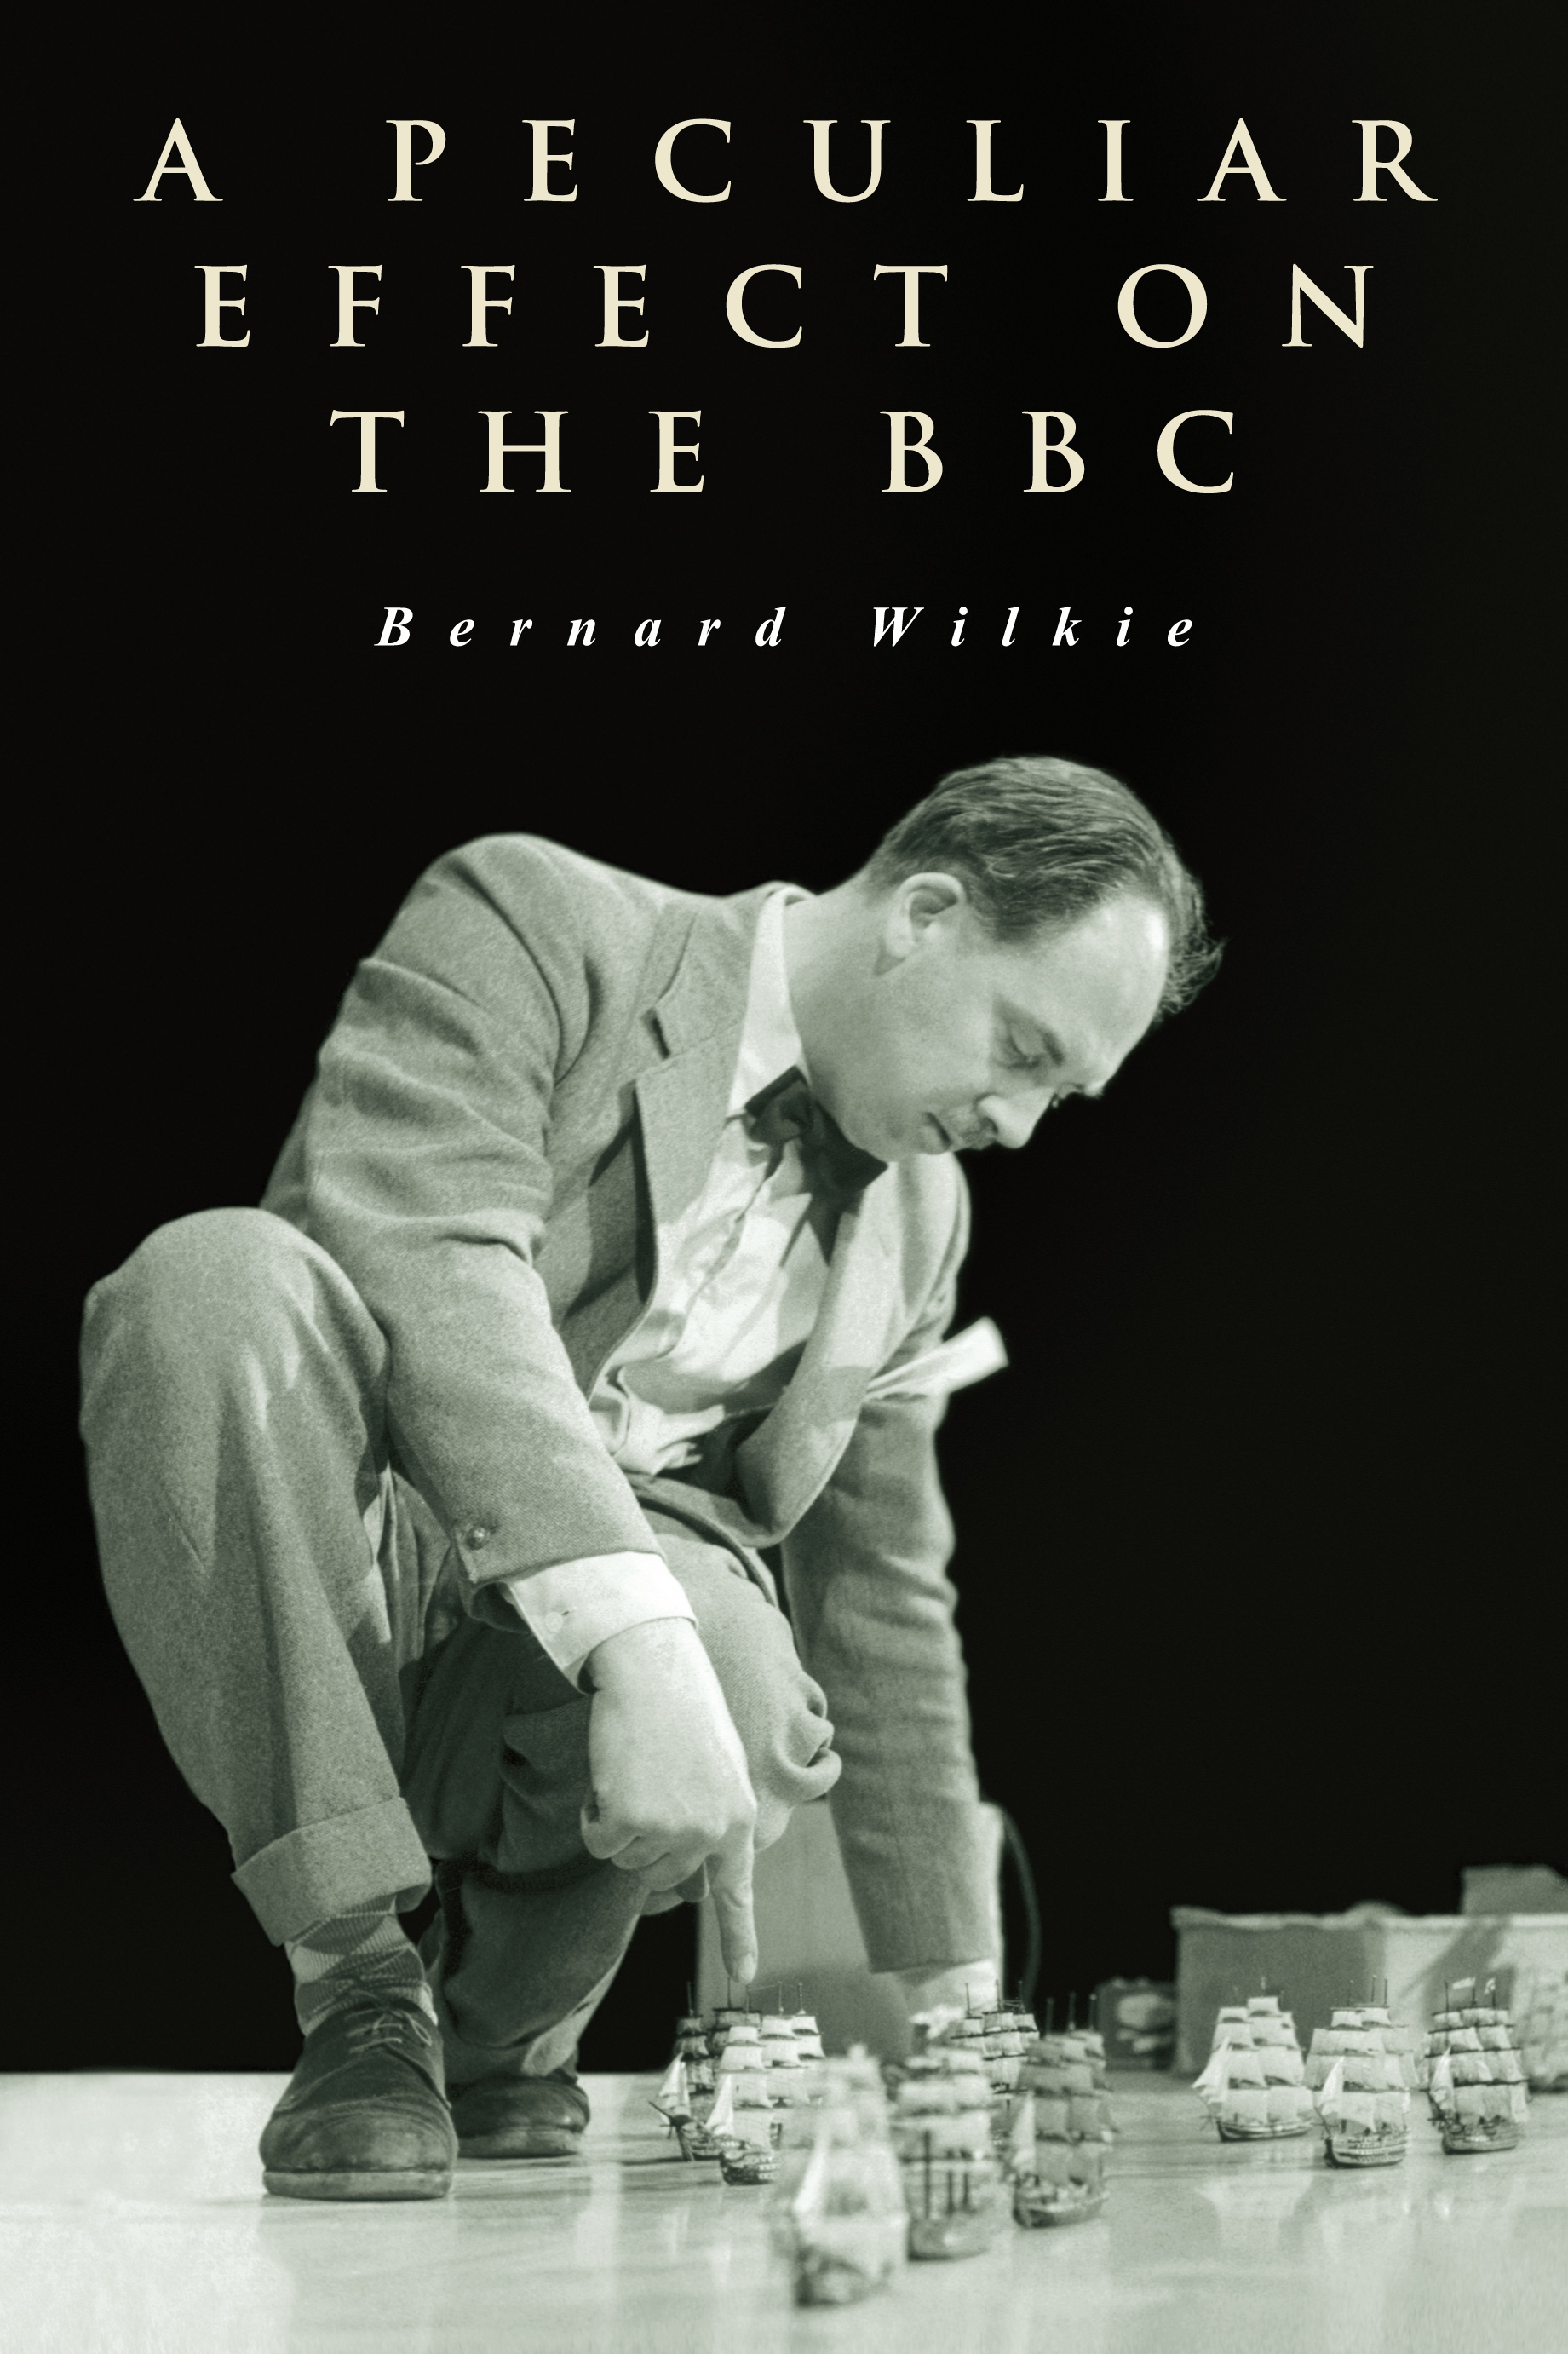 A Peculiar Effect on the BBC (Credit: Miwk Publishing)